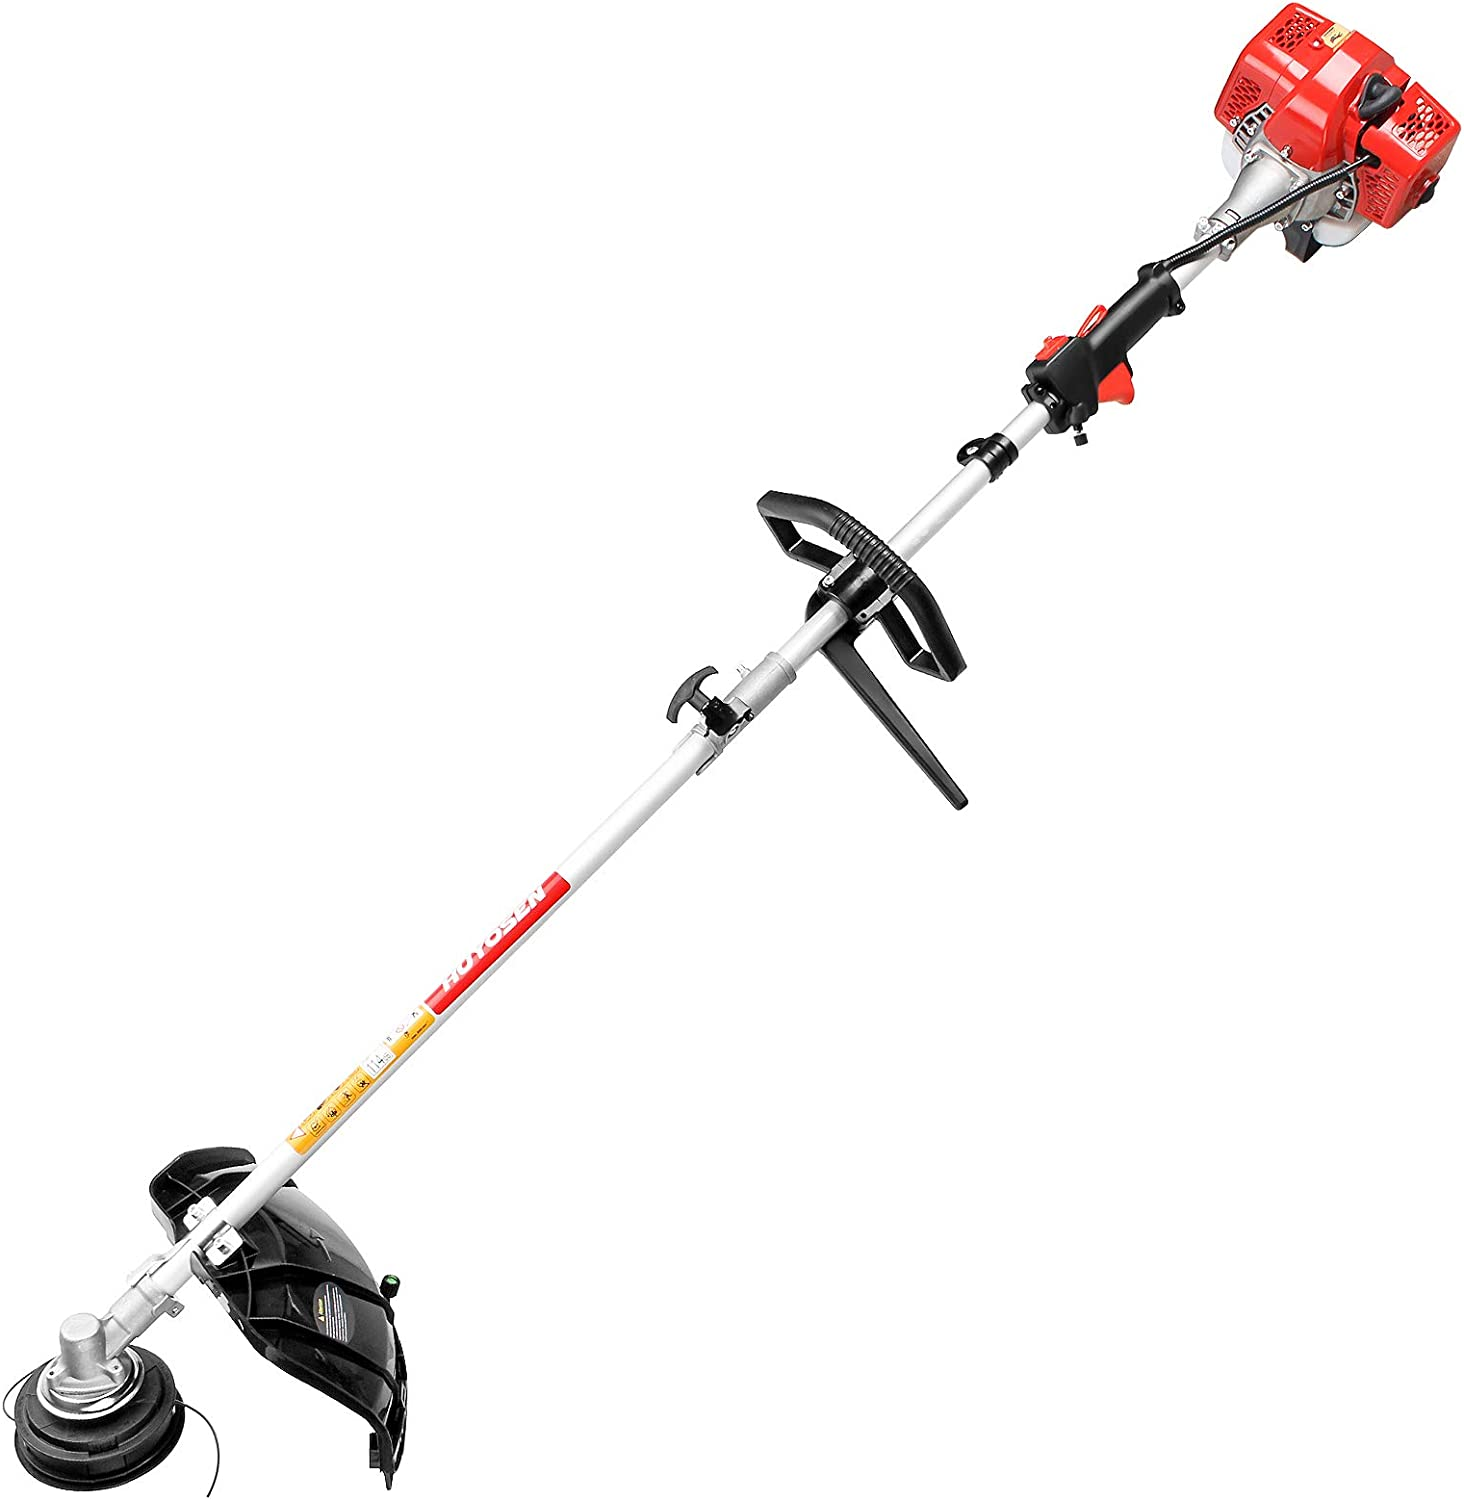 HUYOSEN 25.4CC 2-Cycle 18-Inch Straight Shaft Gas Powered String Trimmer, Brush Cutter Weeder Eater with Attachment Capabilities for Lawn Care and Garden